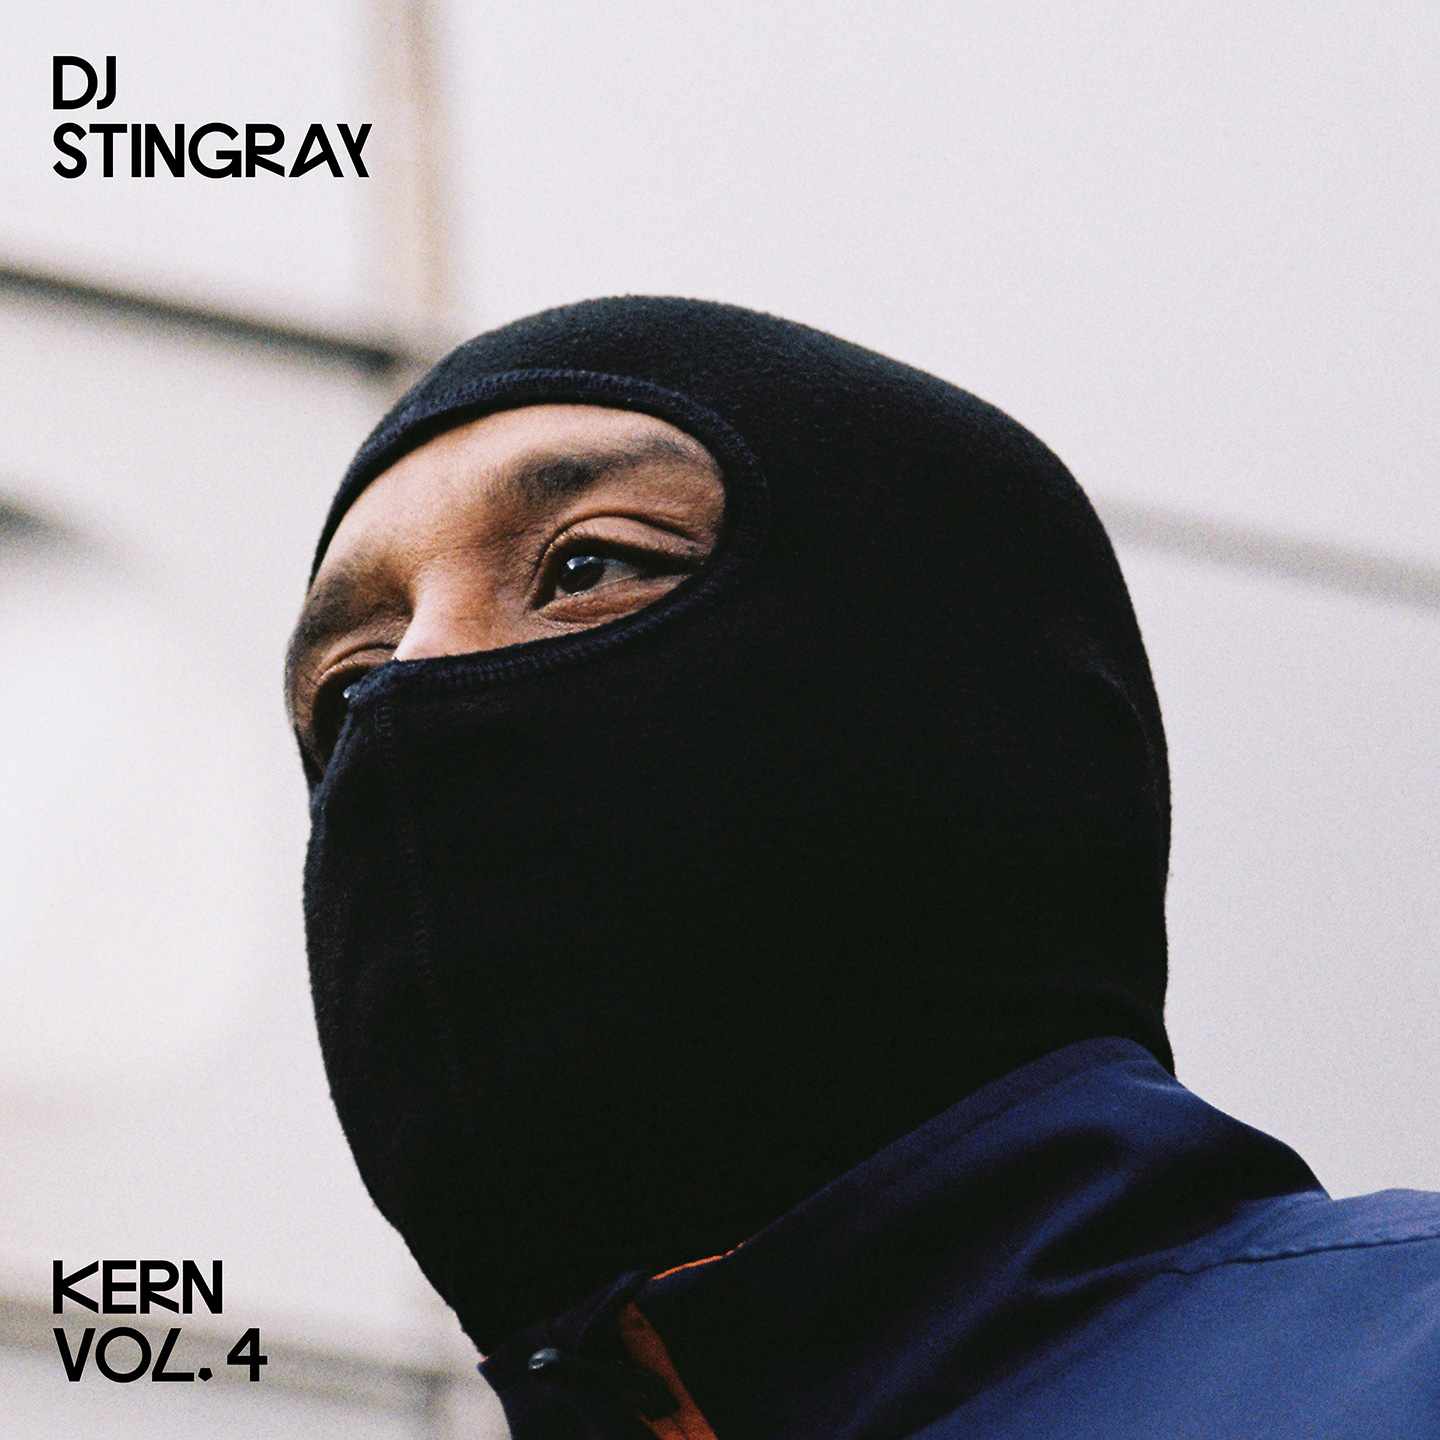 DJ Stingray - Kern Vol. 4